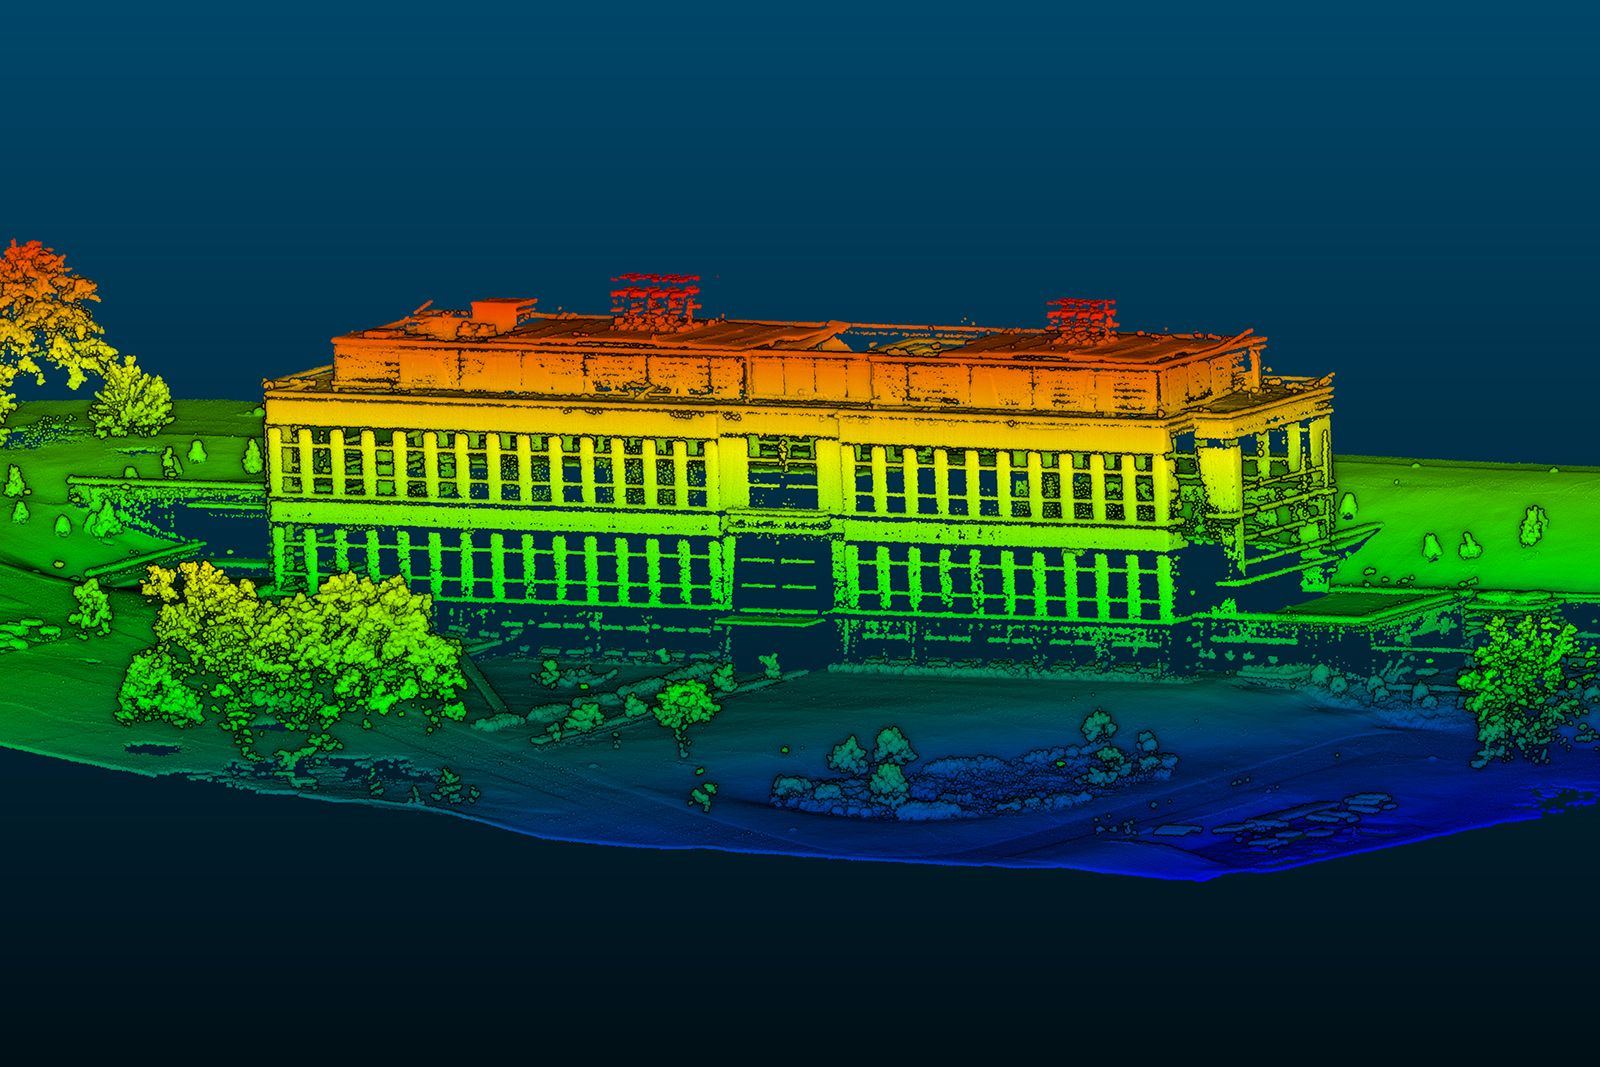 4D Tech Solutions Awarded DHS SBIR Contract